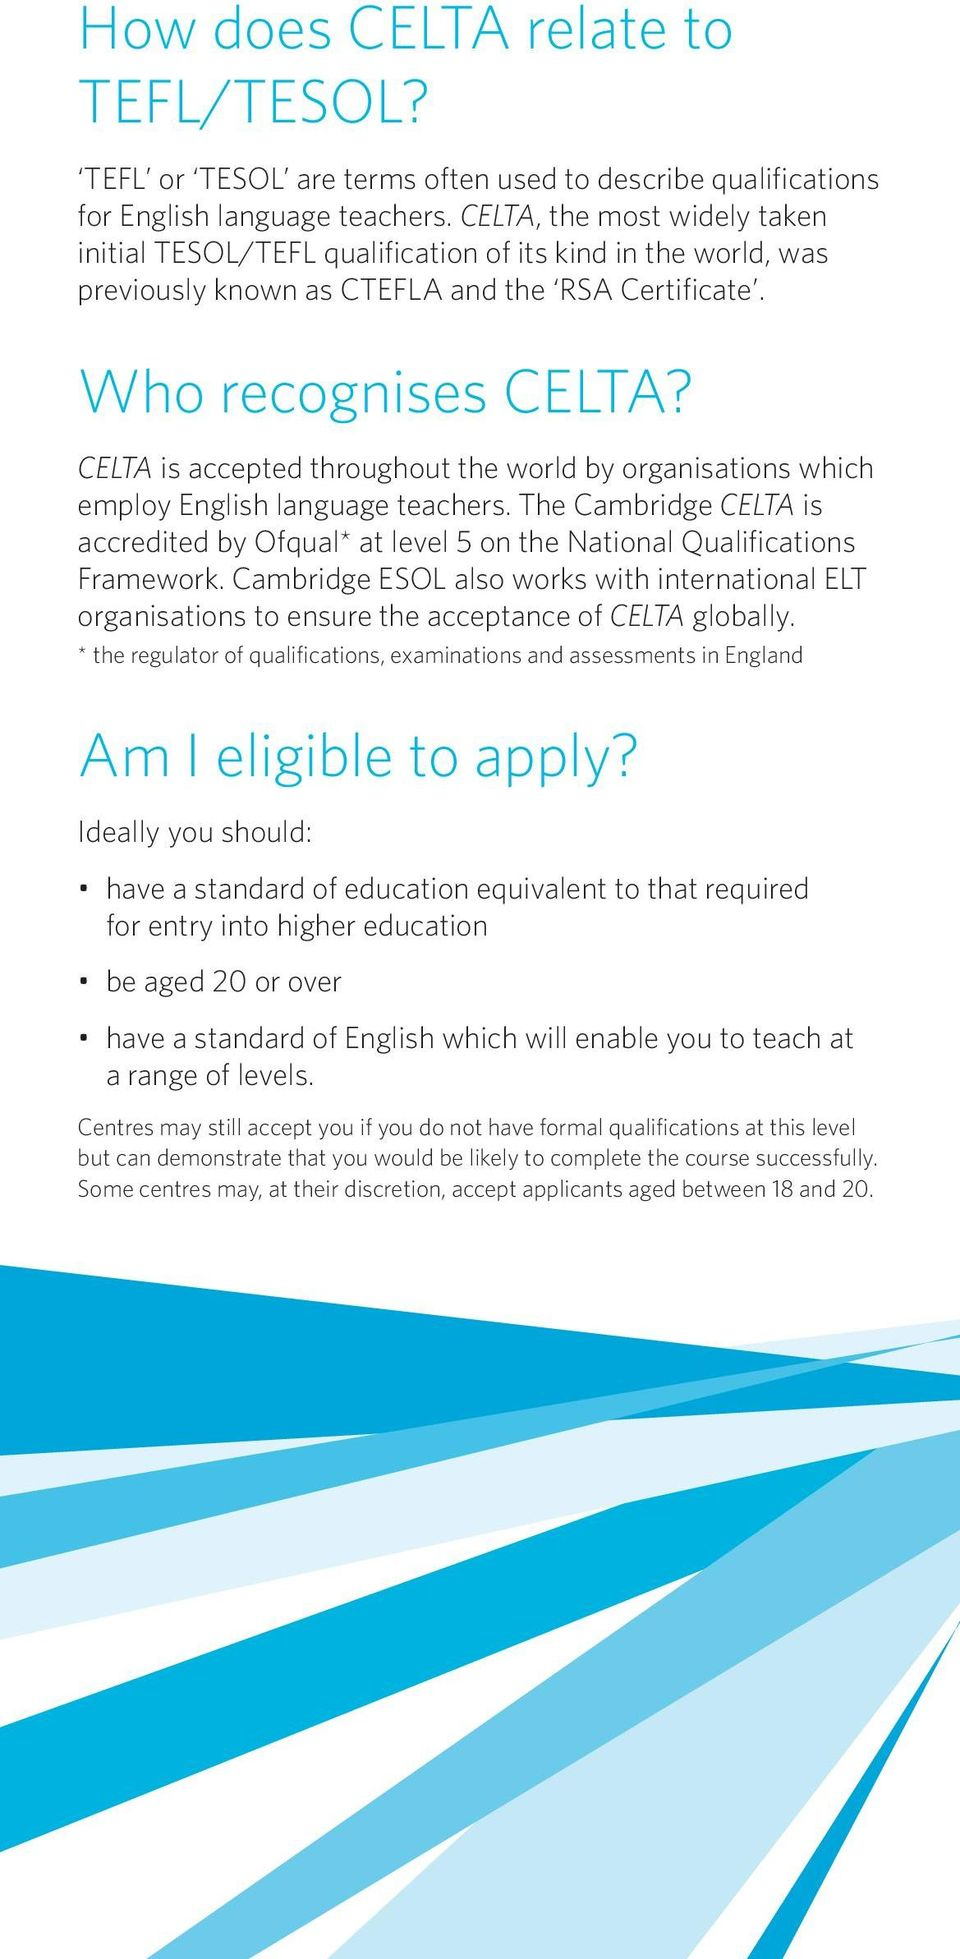 CELTA is accepted throughout the world by organisations which employ English language teachers. The Cambridge CELTA is accredited by Ofqual* at level 5 on the National Qualifications Framework.